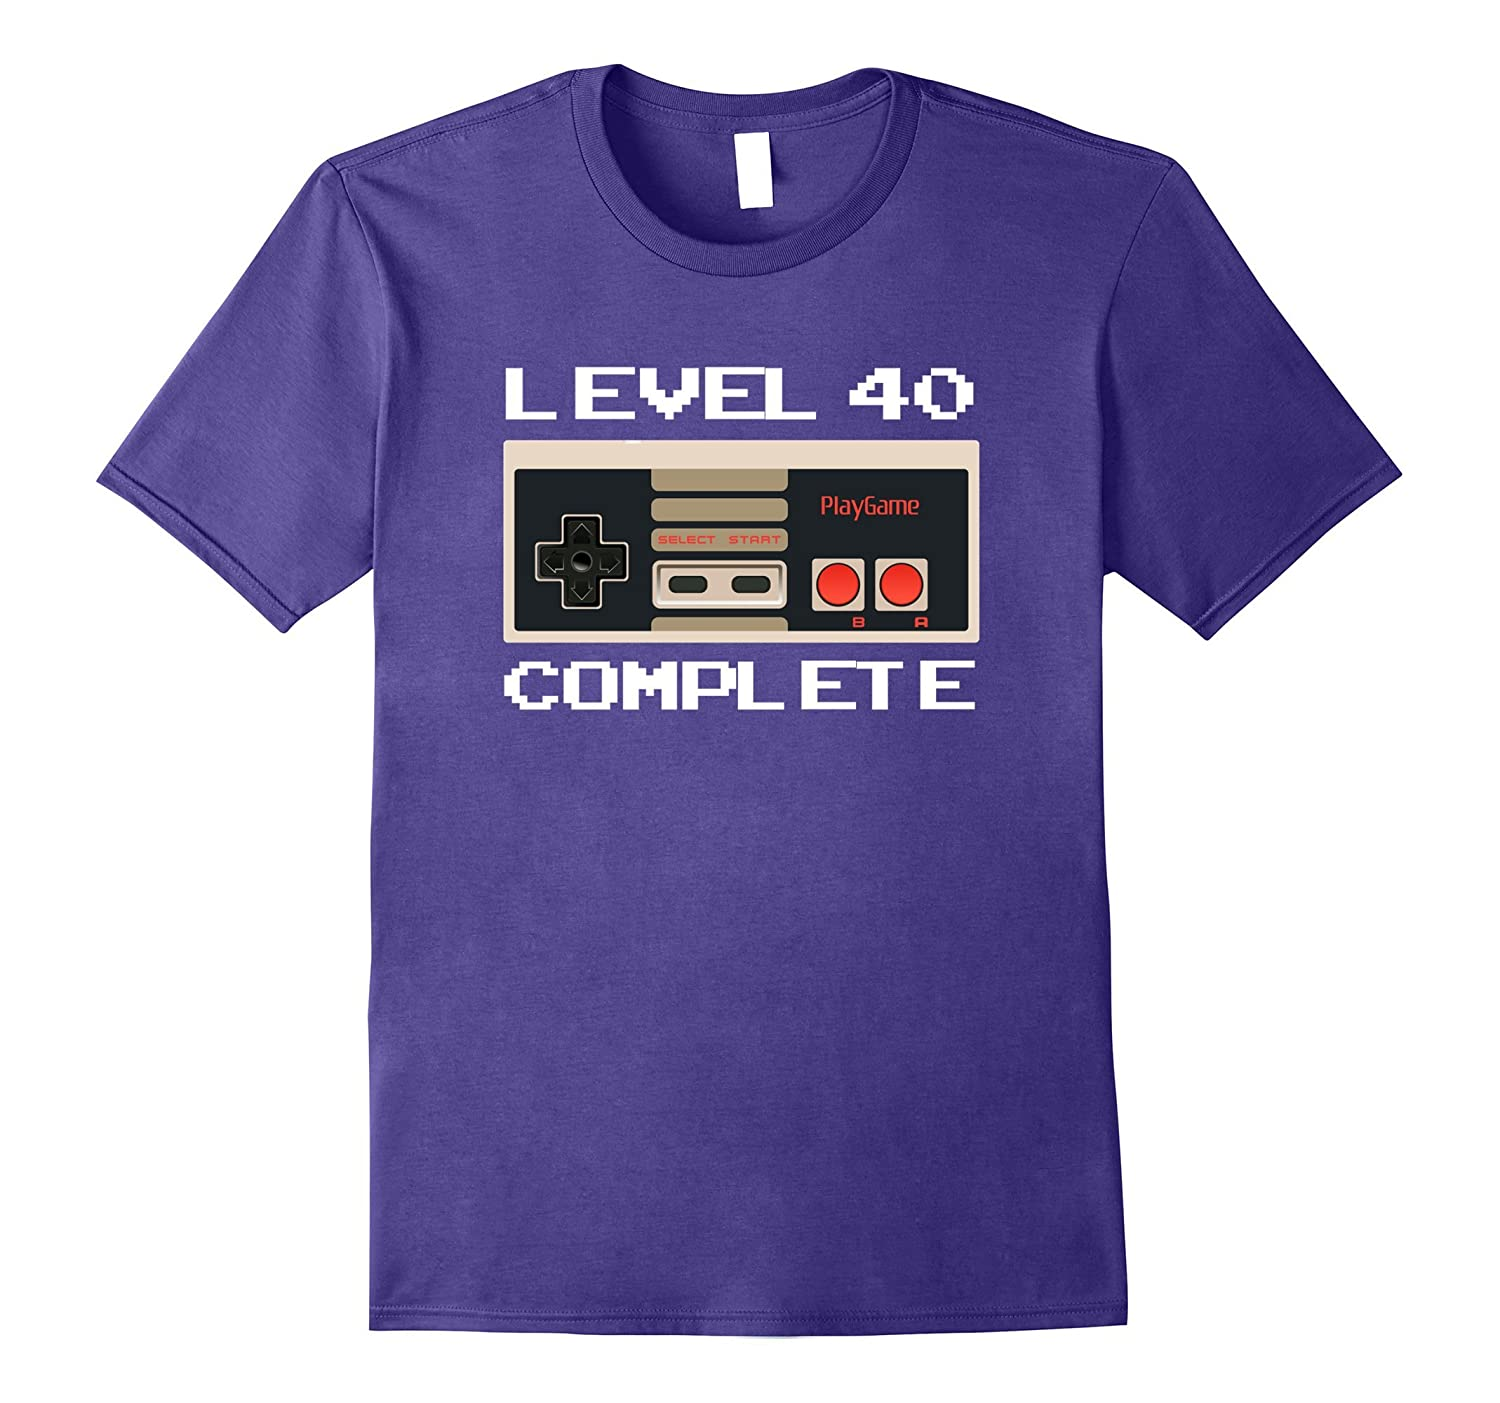 Level 40 Complete Funny 1978 40th Birthday Gift T-Shirt-ah my shirt one gift